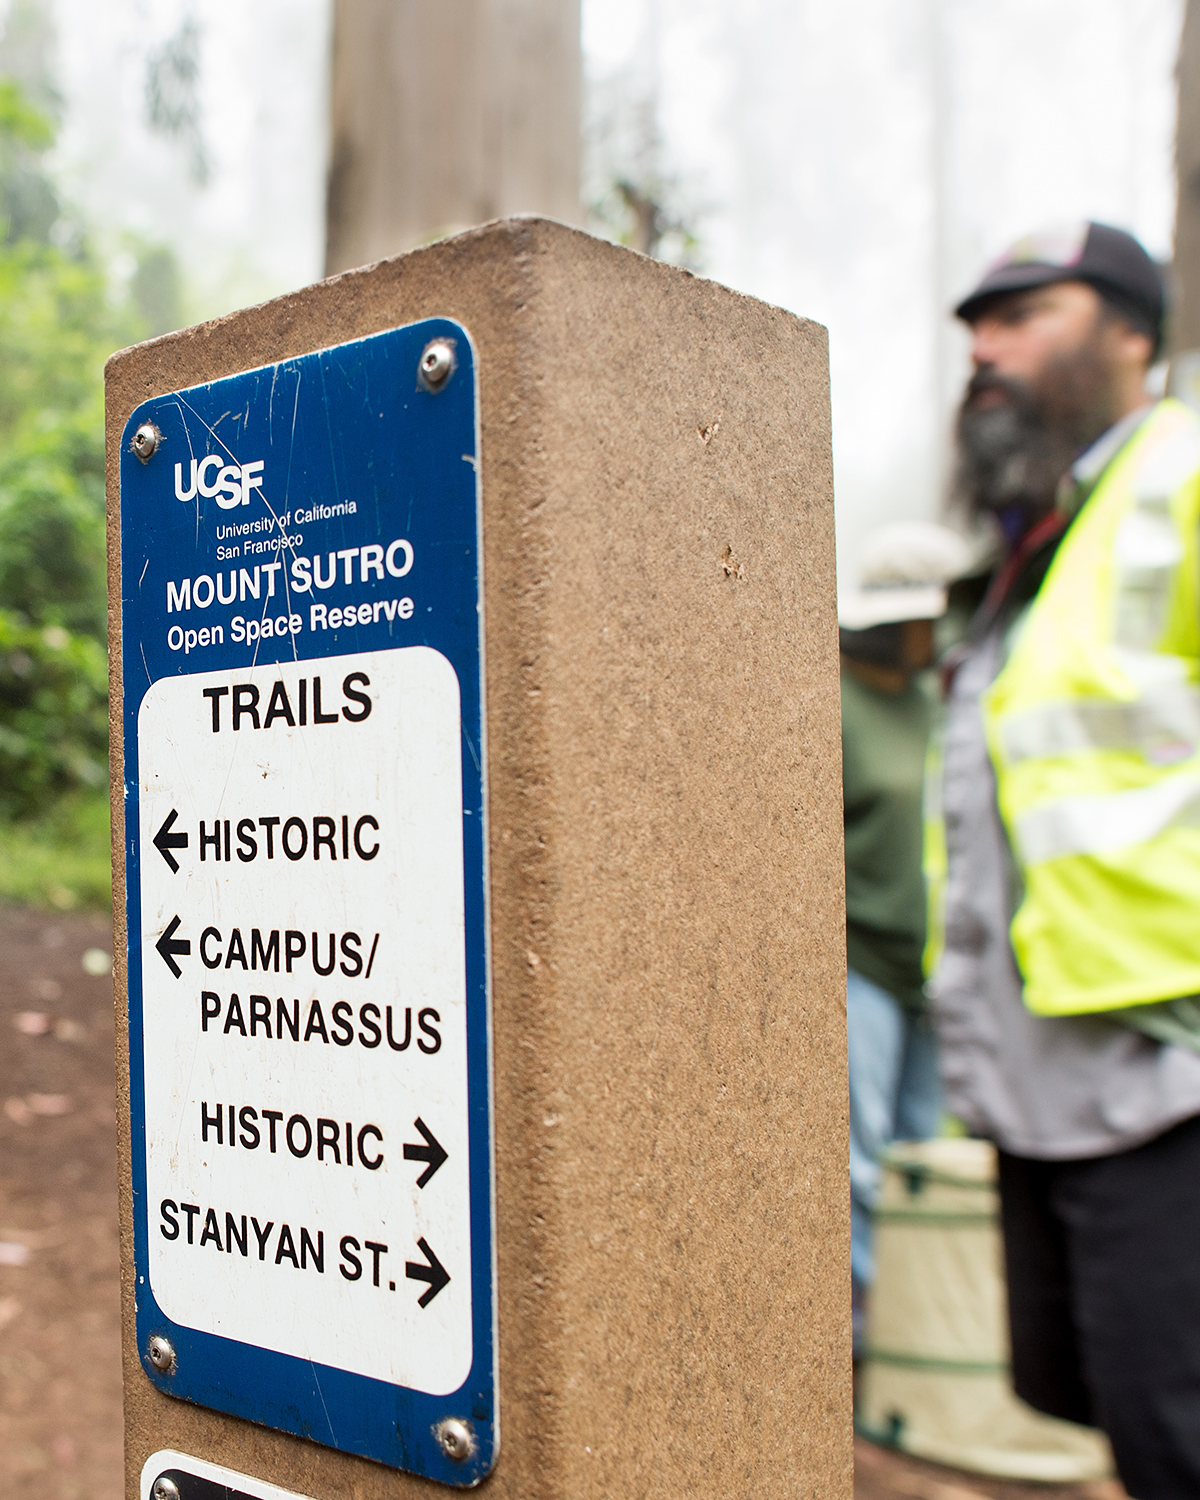 A sign on Mount Sutro points to the Historic Trail, the Parnassus Campus and Stanyan Street